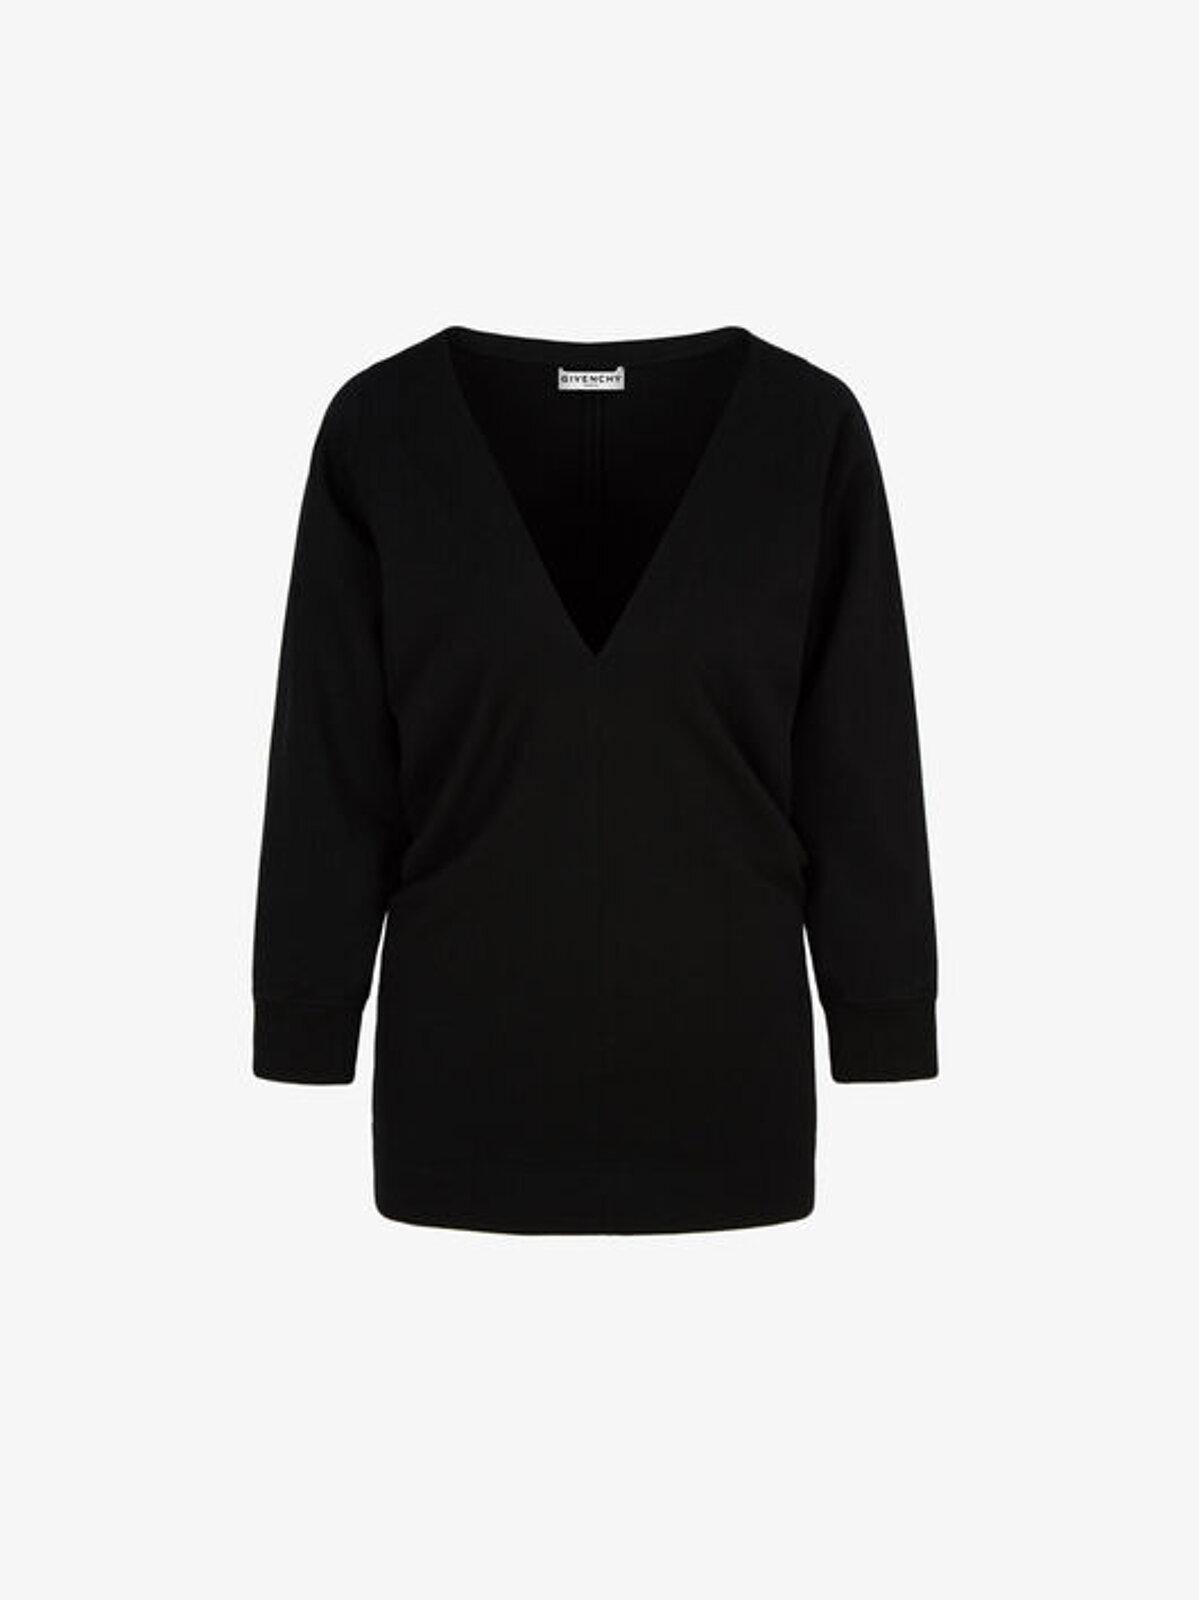 Shirred Top With V-Neckline - Givenchy